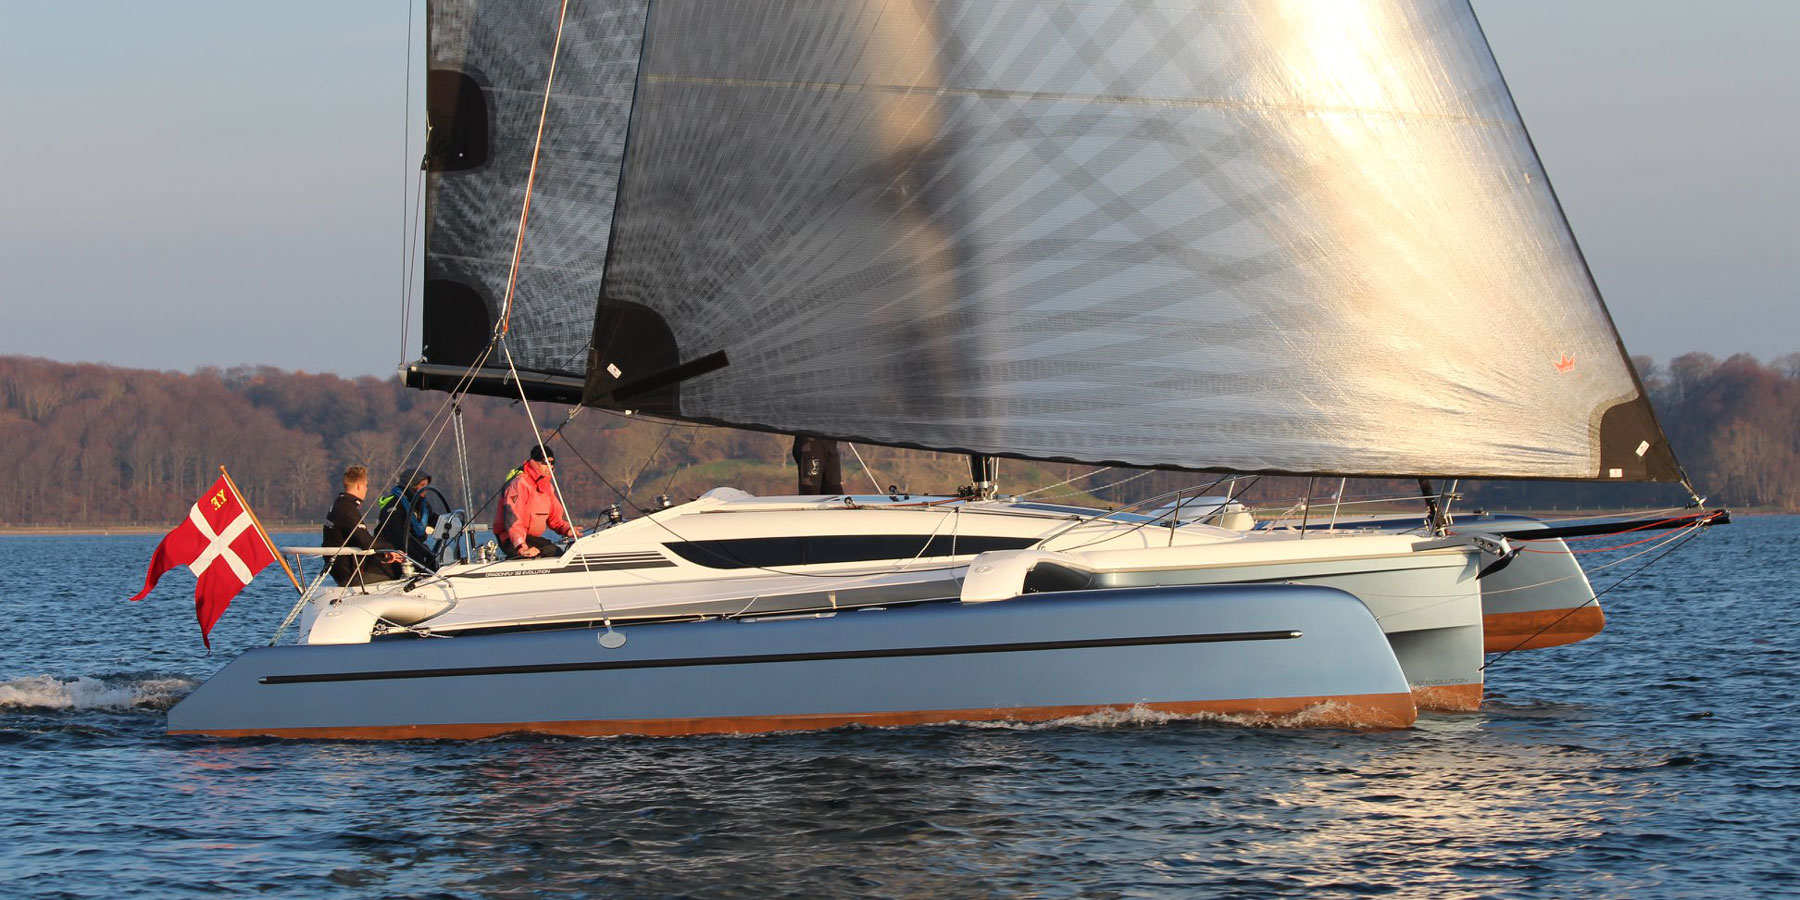 Dragonfly 32 Evolution trimaran sailing with Code 0